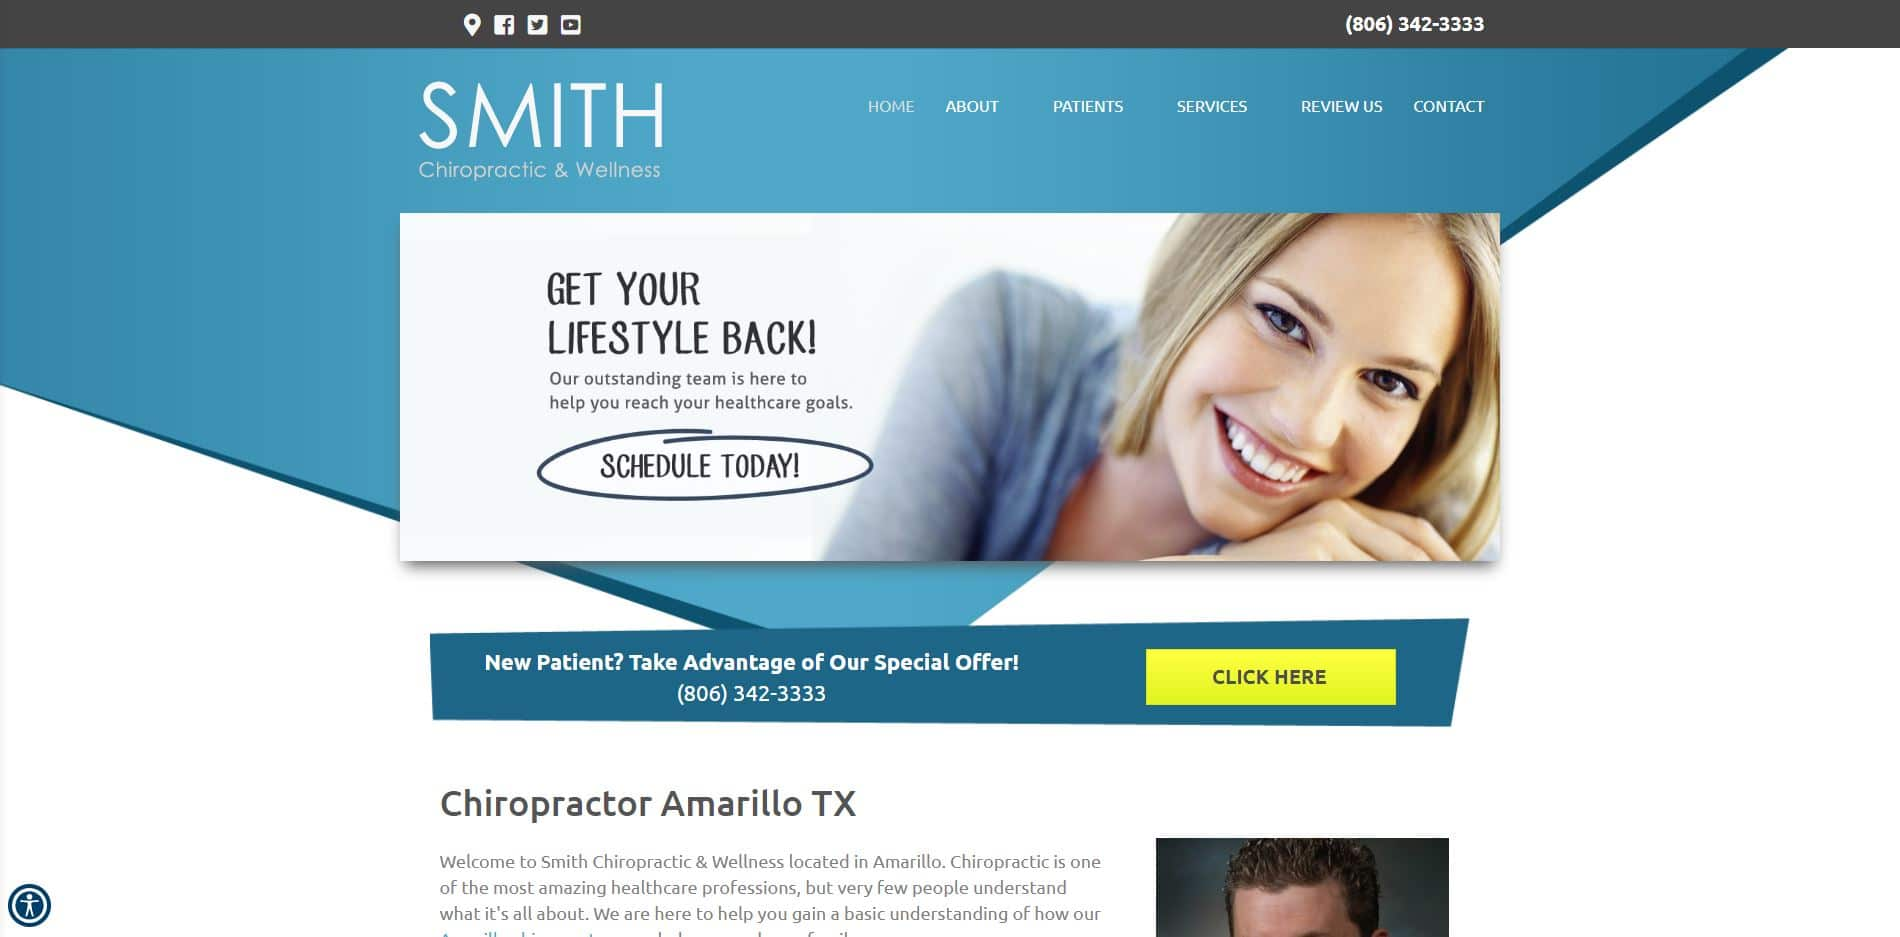 Chiropractor in Amarillo